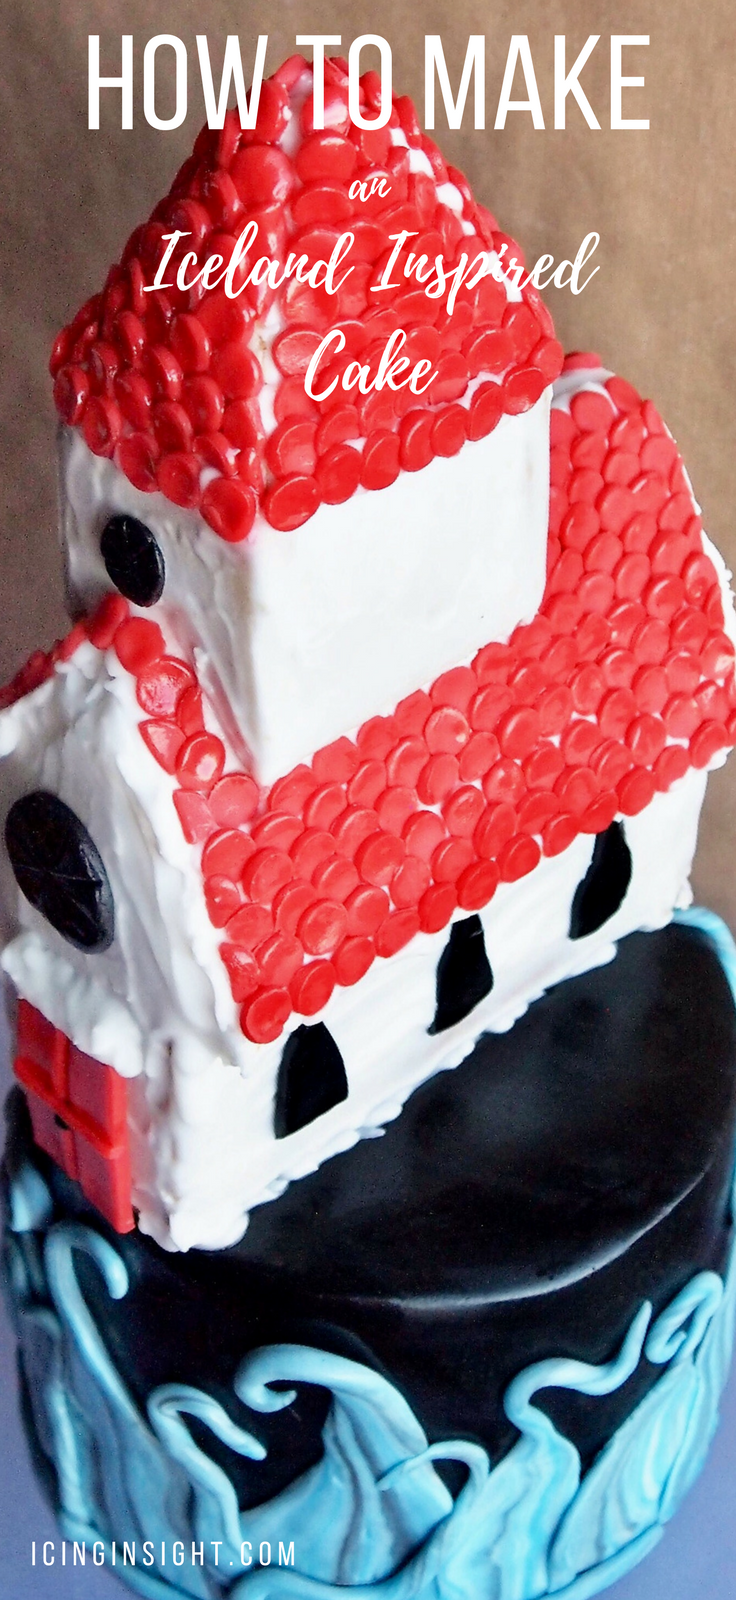 Step by step guide to make a cake and gingerbread church inspired by the beautiful village of Vik in Iceland with fondant waves